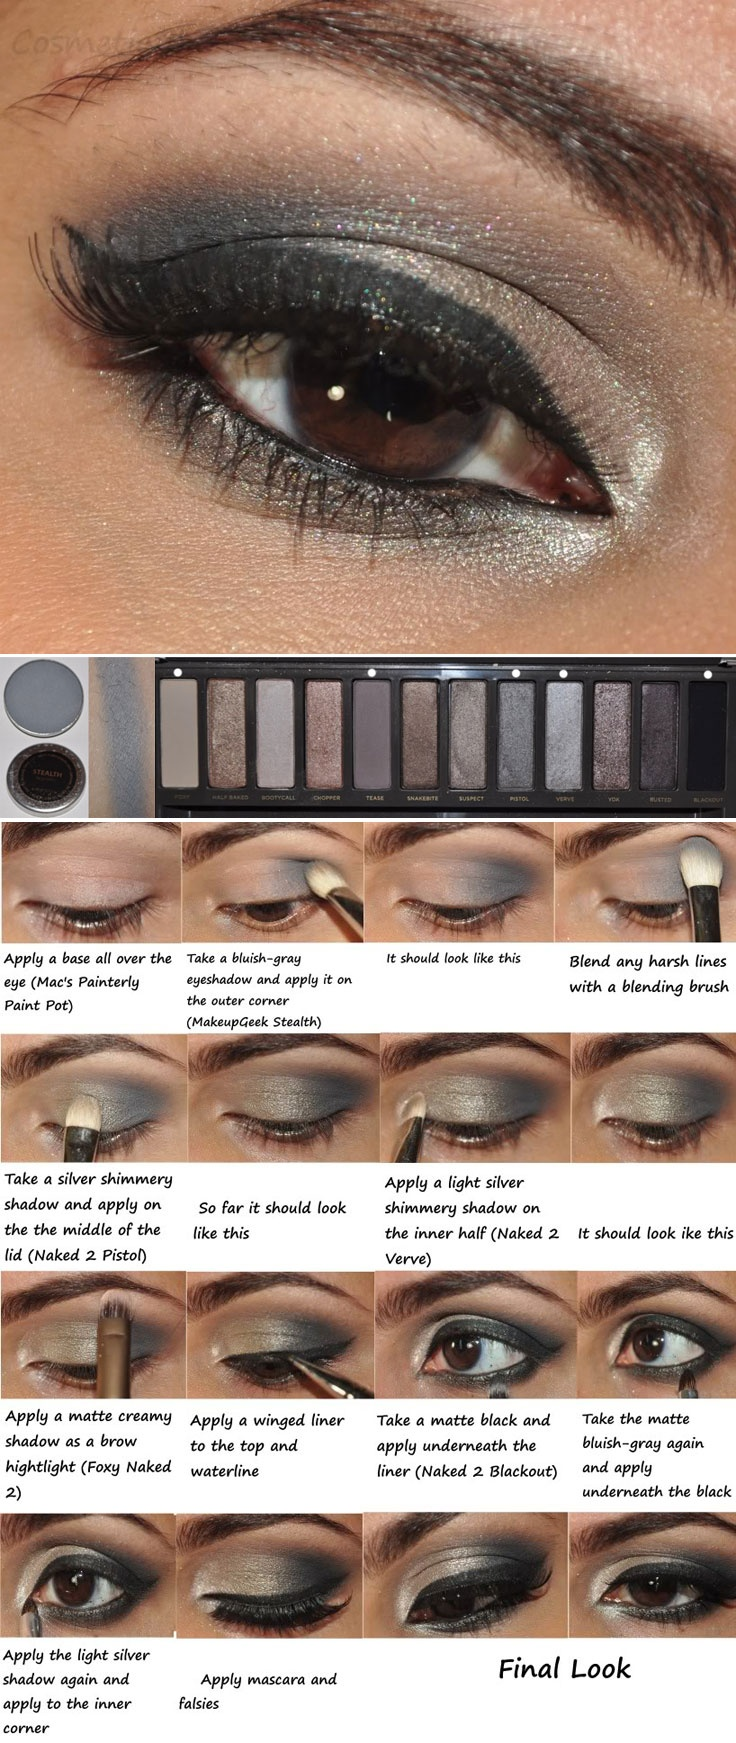 DIY :: Silver Smokey Eyes (NAKED 2) by #cosmeticblur :: You'll Need base (MAC Painterly), MUG Stealth (bluish-gray matte), Naked 2 Palette...LtoR: Foxy, Tease, Pistol, Verve & Blackout & a gel liner (Clinique True Black) :: CLICK for the VIDEO TUTORIAL | #naked2 #naked2palette #nakedpalette